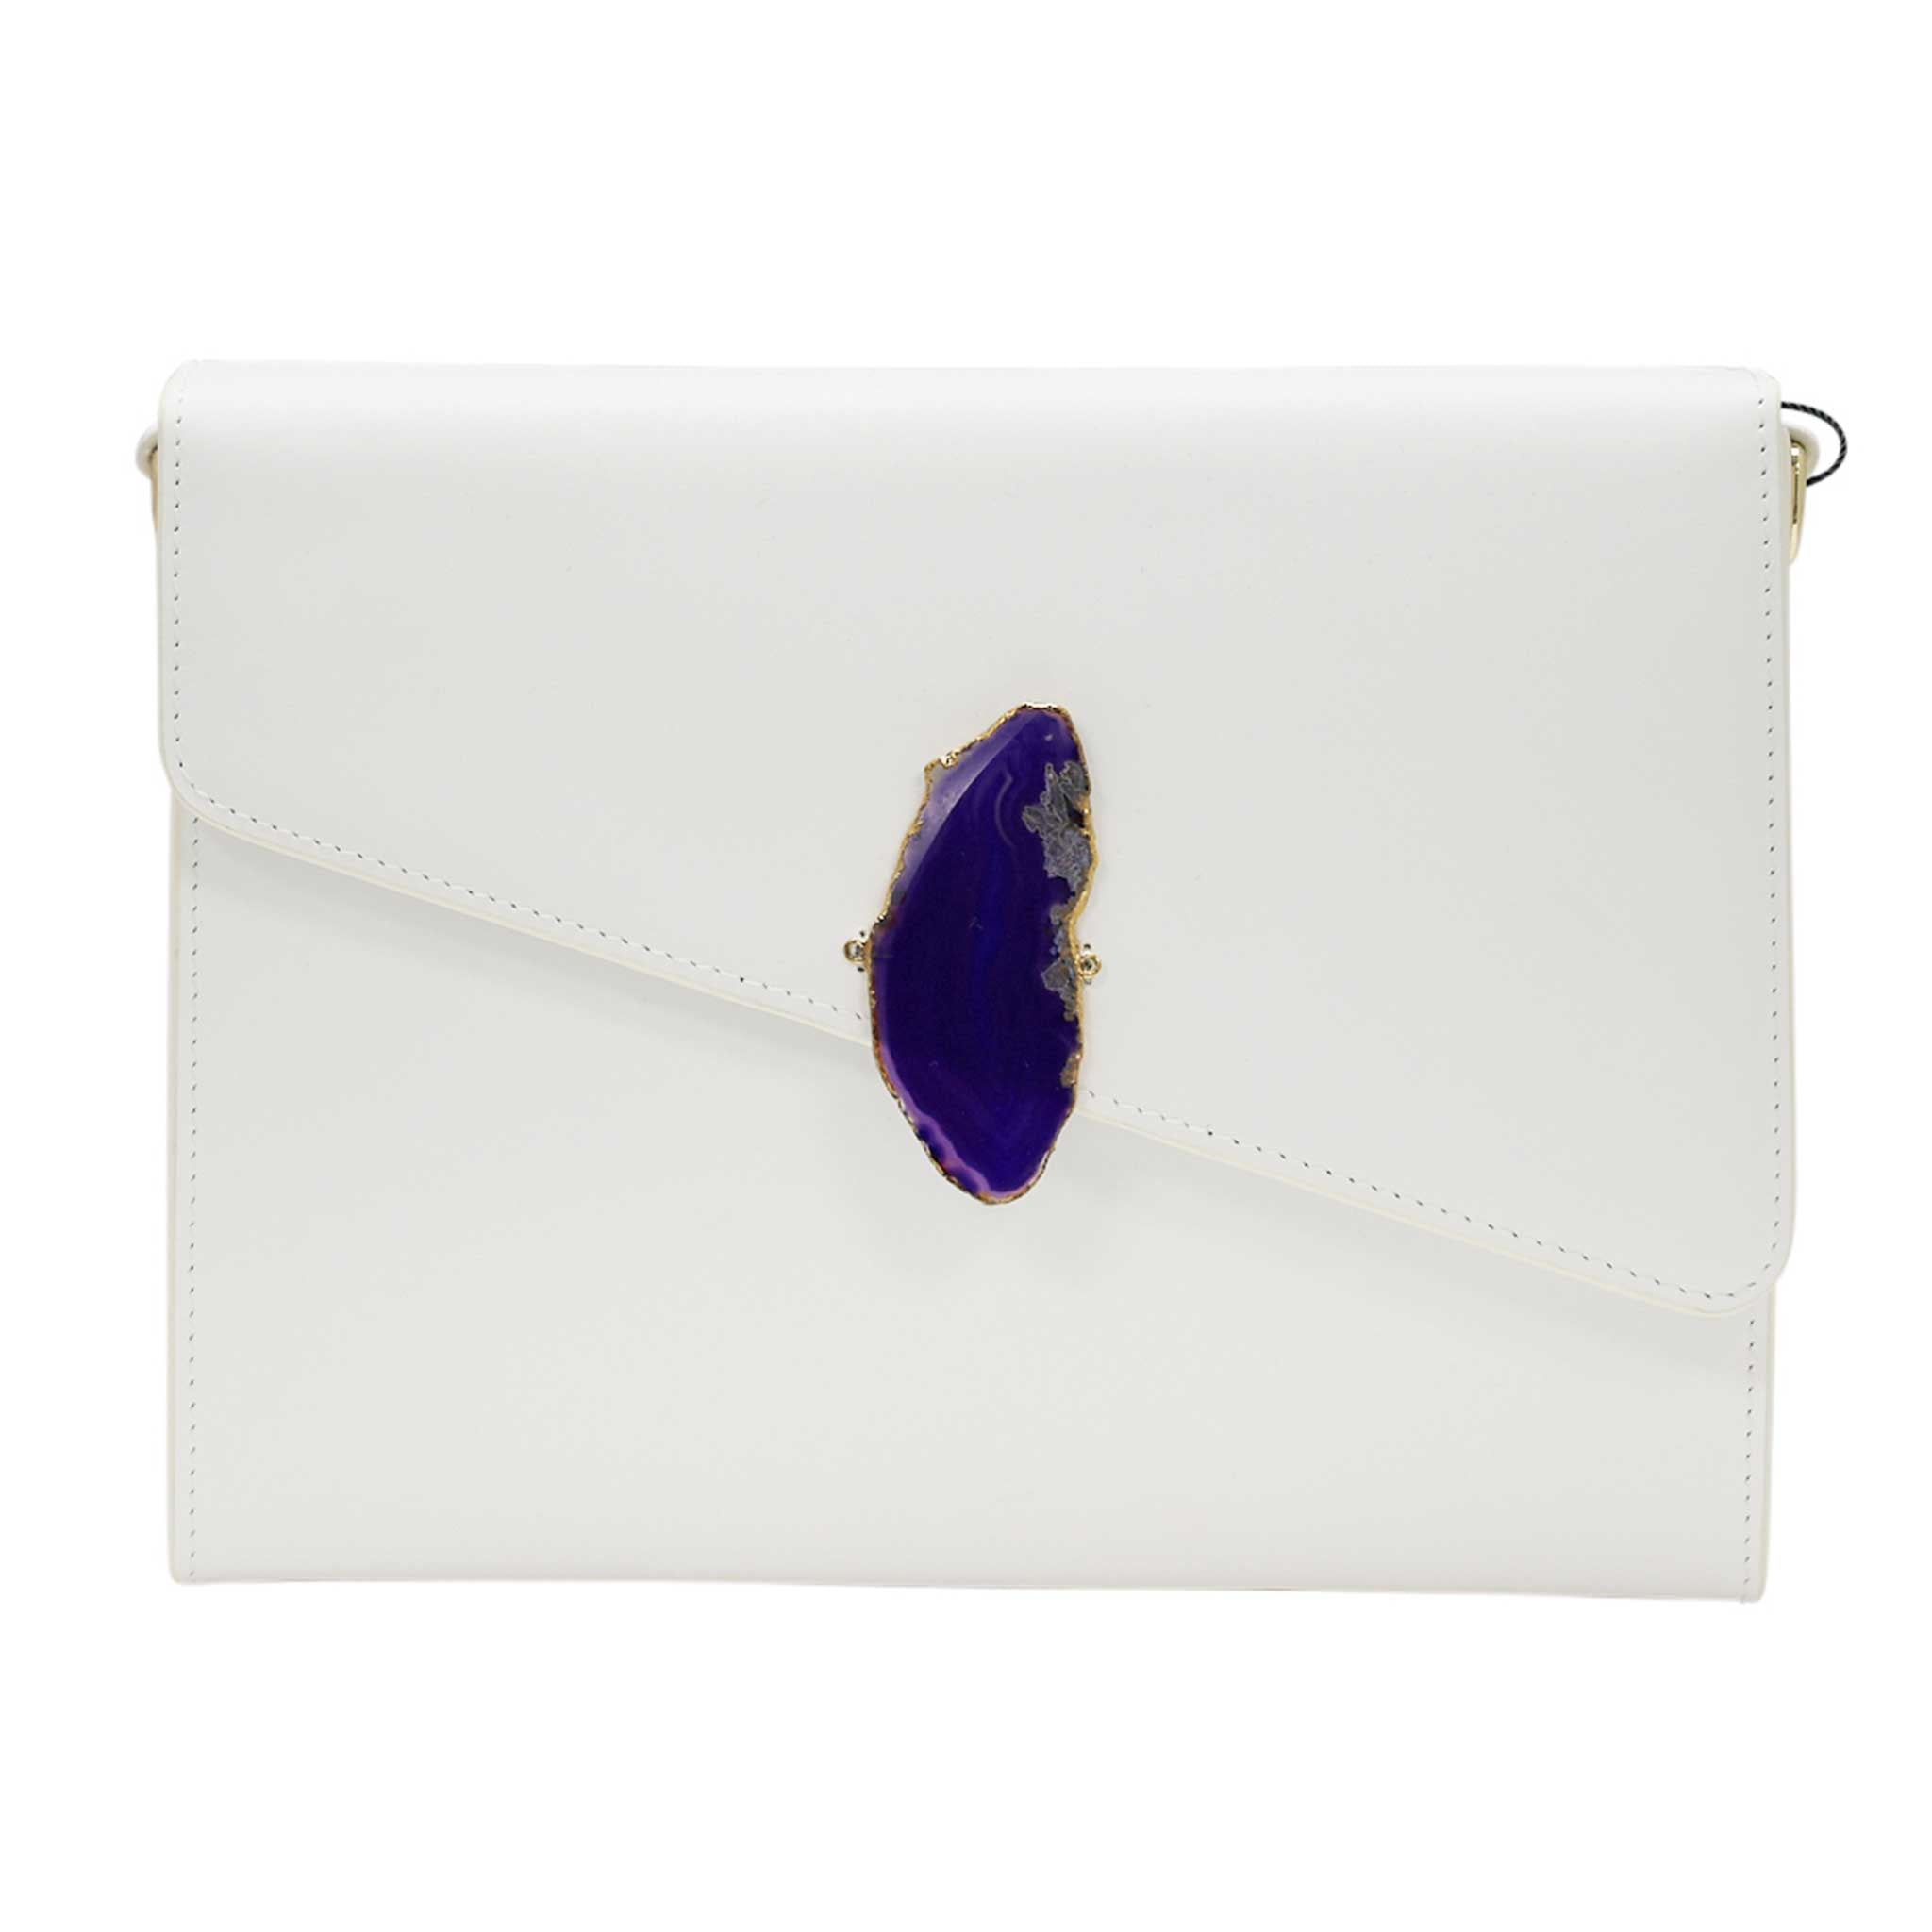 LOVED BAG - MOONSTONE WHITE LEATHER WITH PURPLE AGATE - 1.03.006.023